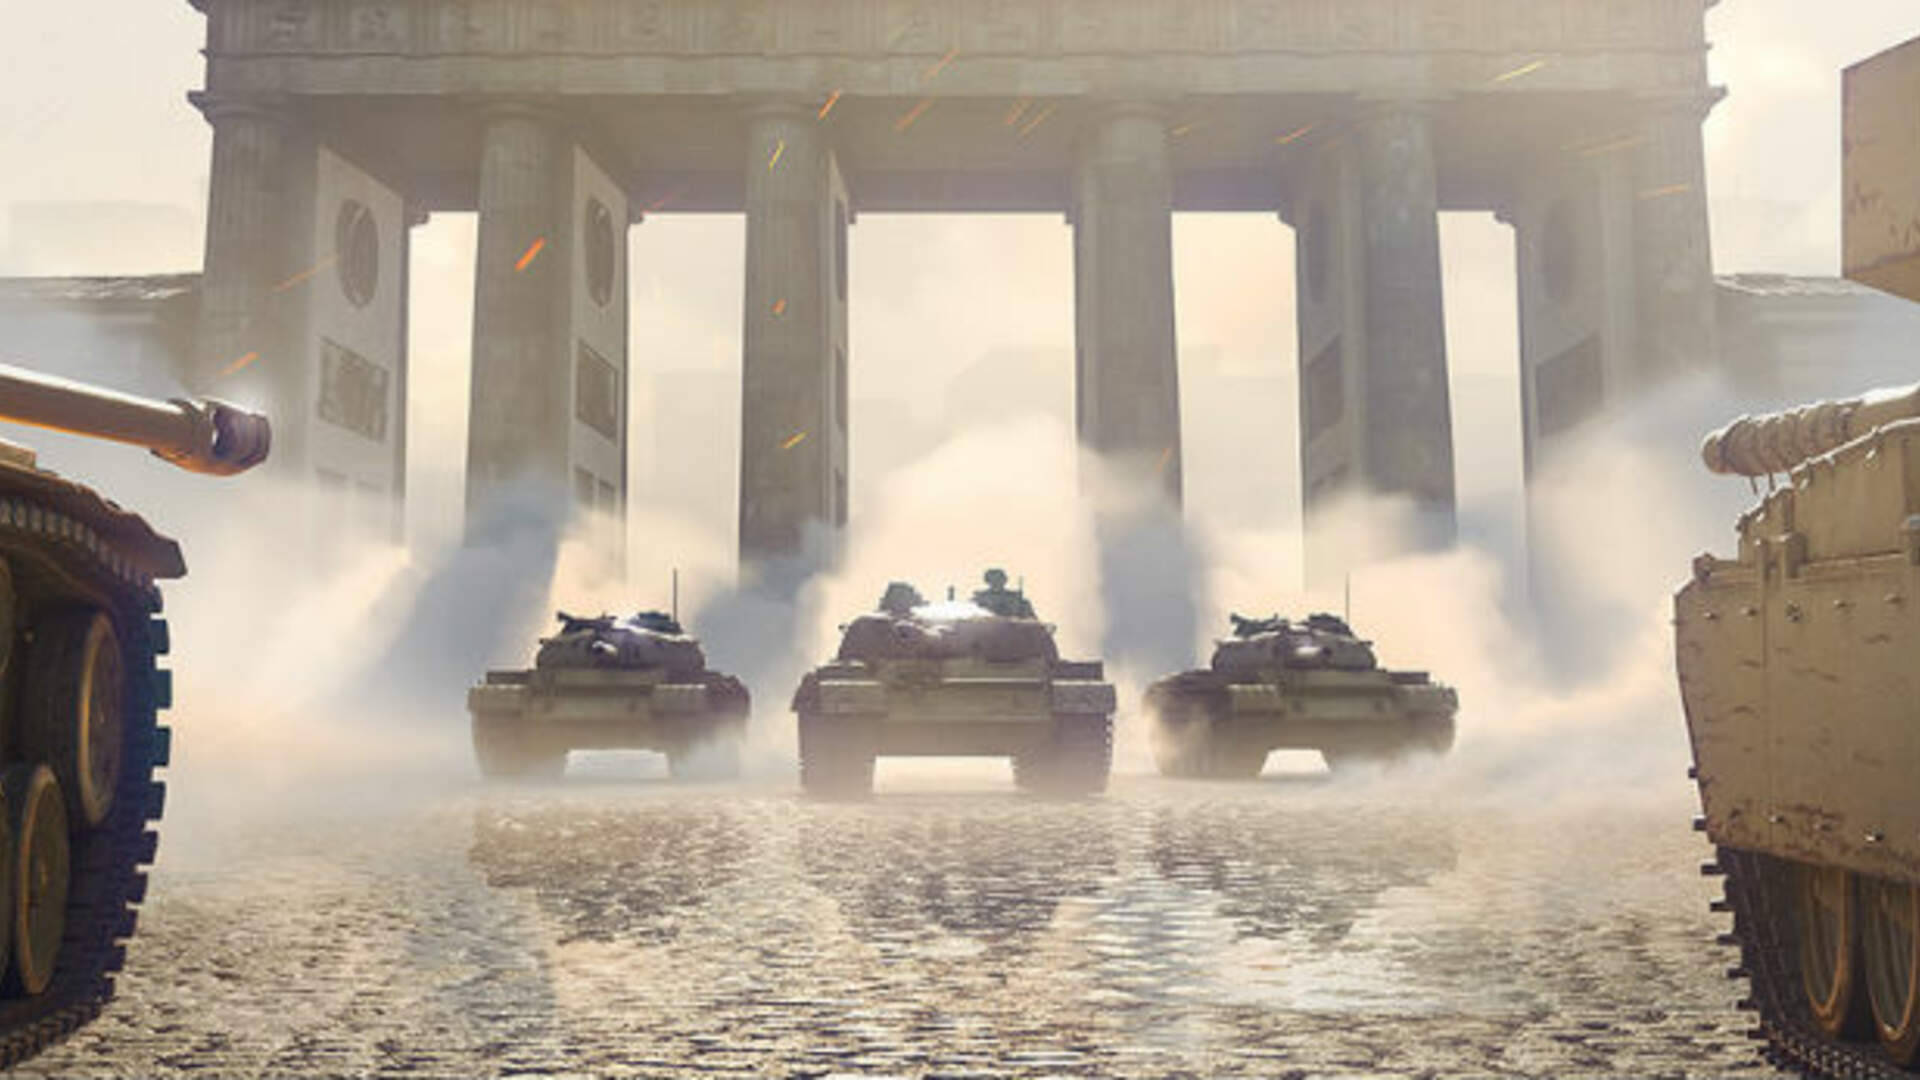 World of Tanks Gets Its First Single-Player Campaign